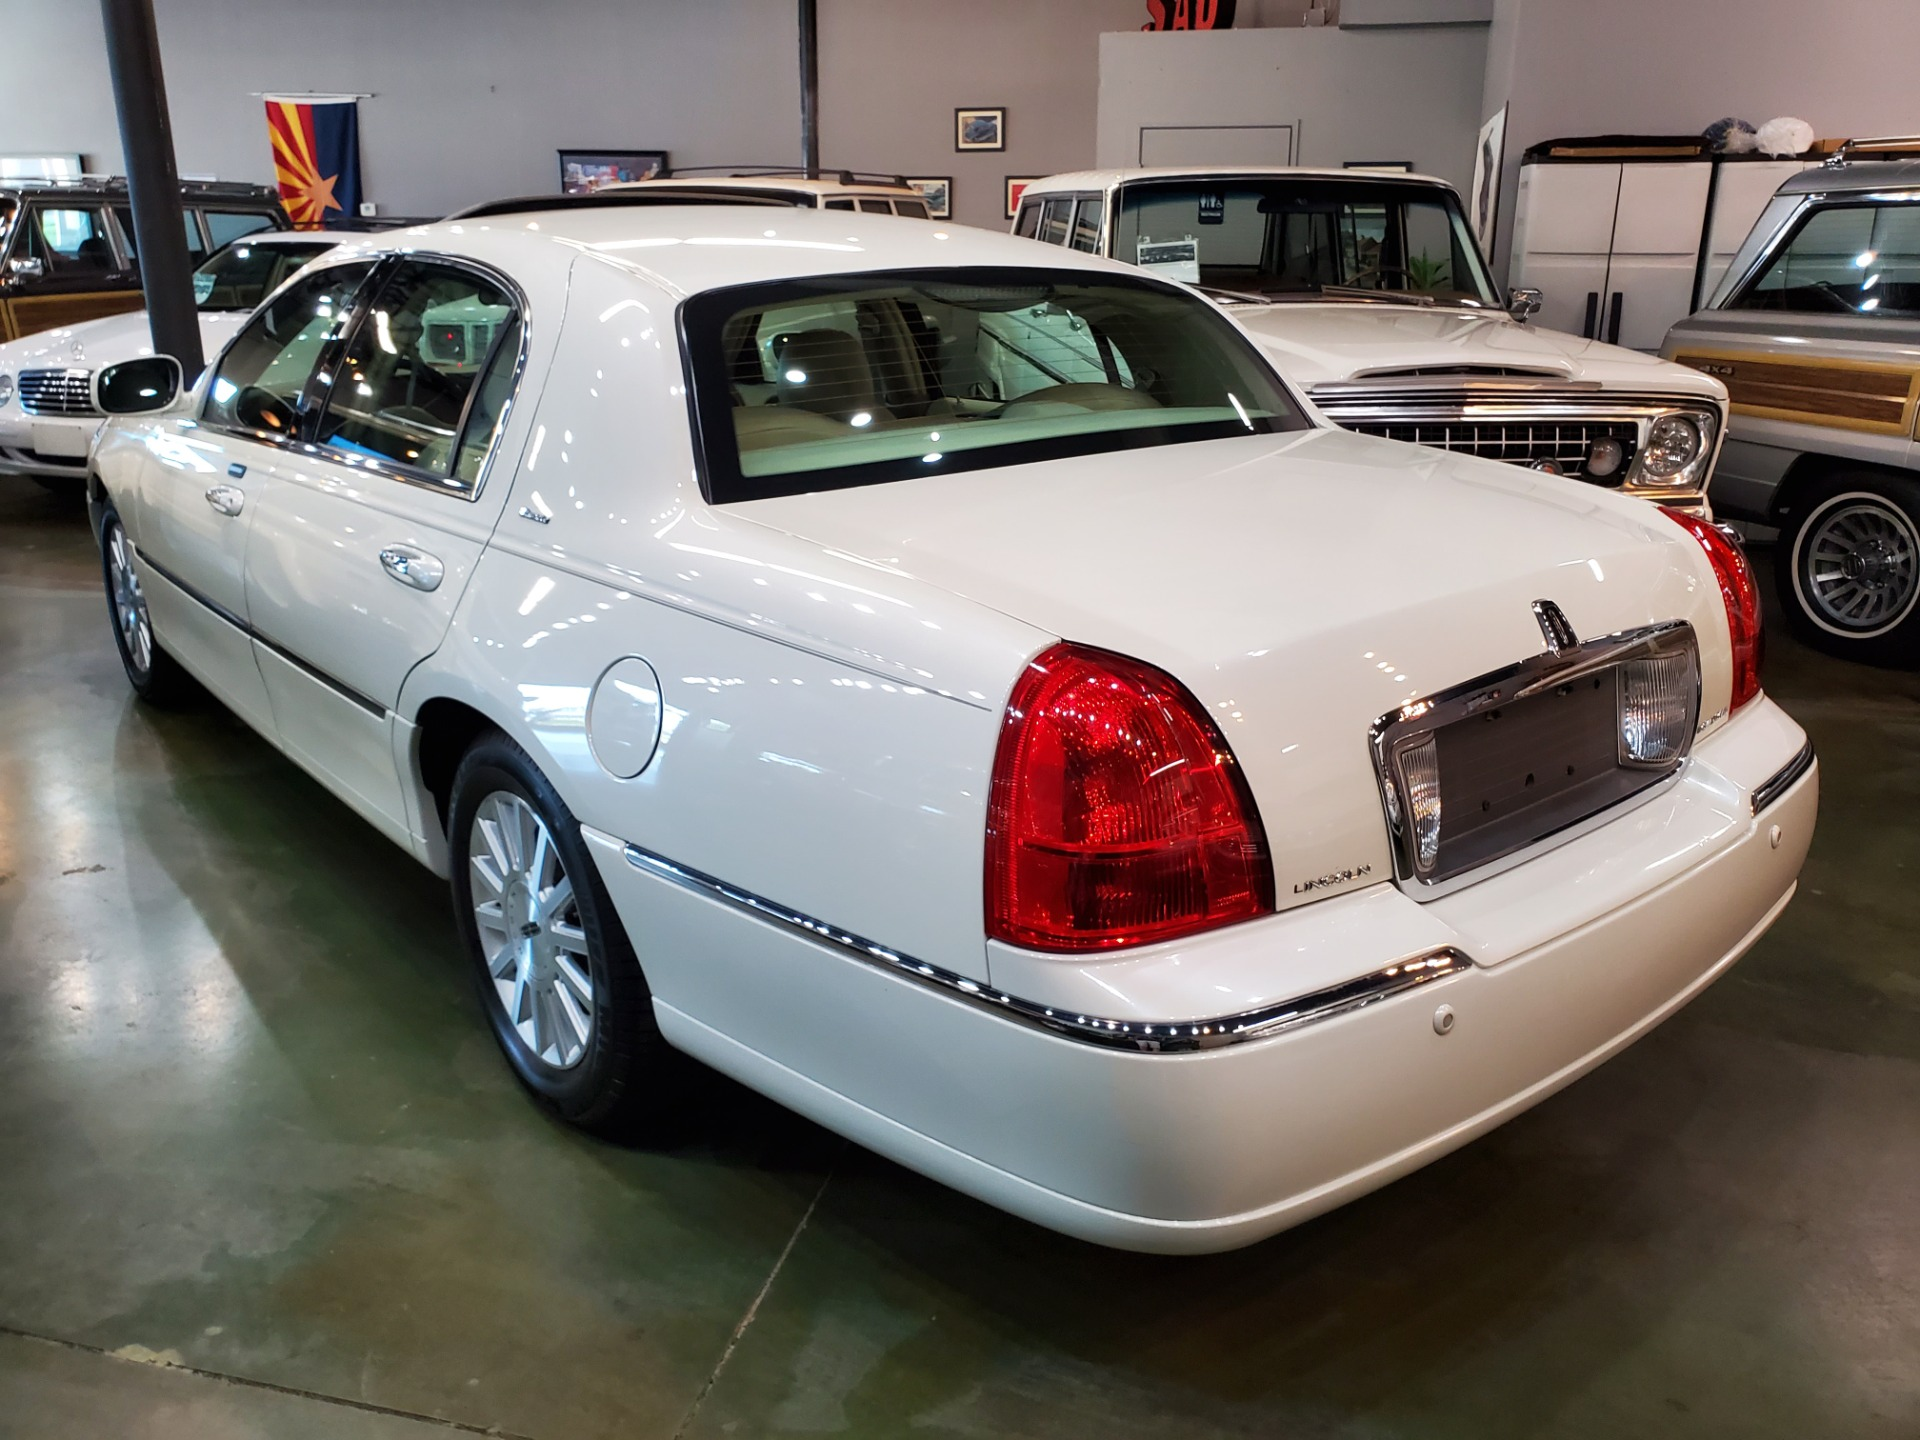 Used-2004-Lincoln-Town-Car-Ultimate-Land-Rover